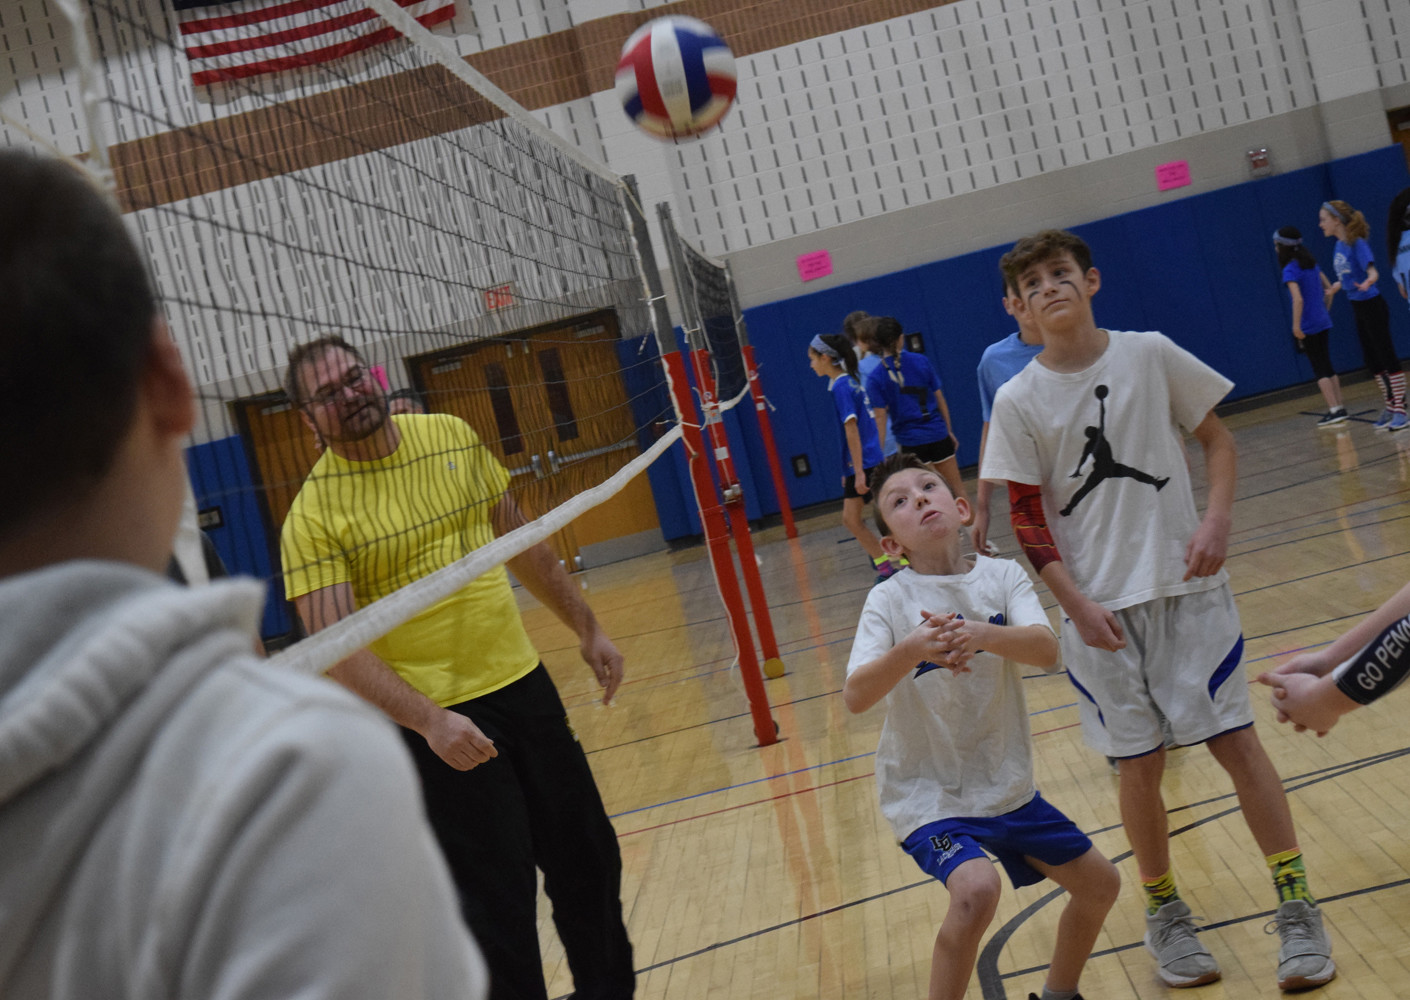 Ethan Kurtz goes for a save while his teammate Ty Weigher and school staff member Daniel Kauffman look on.